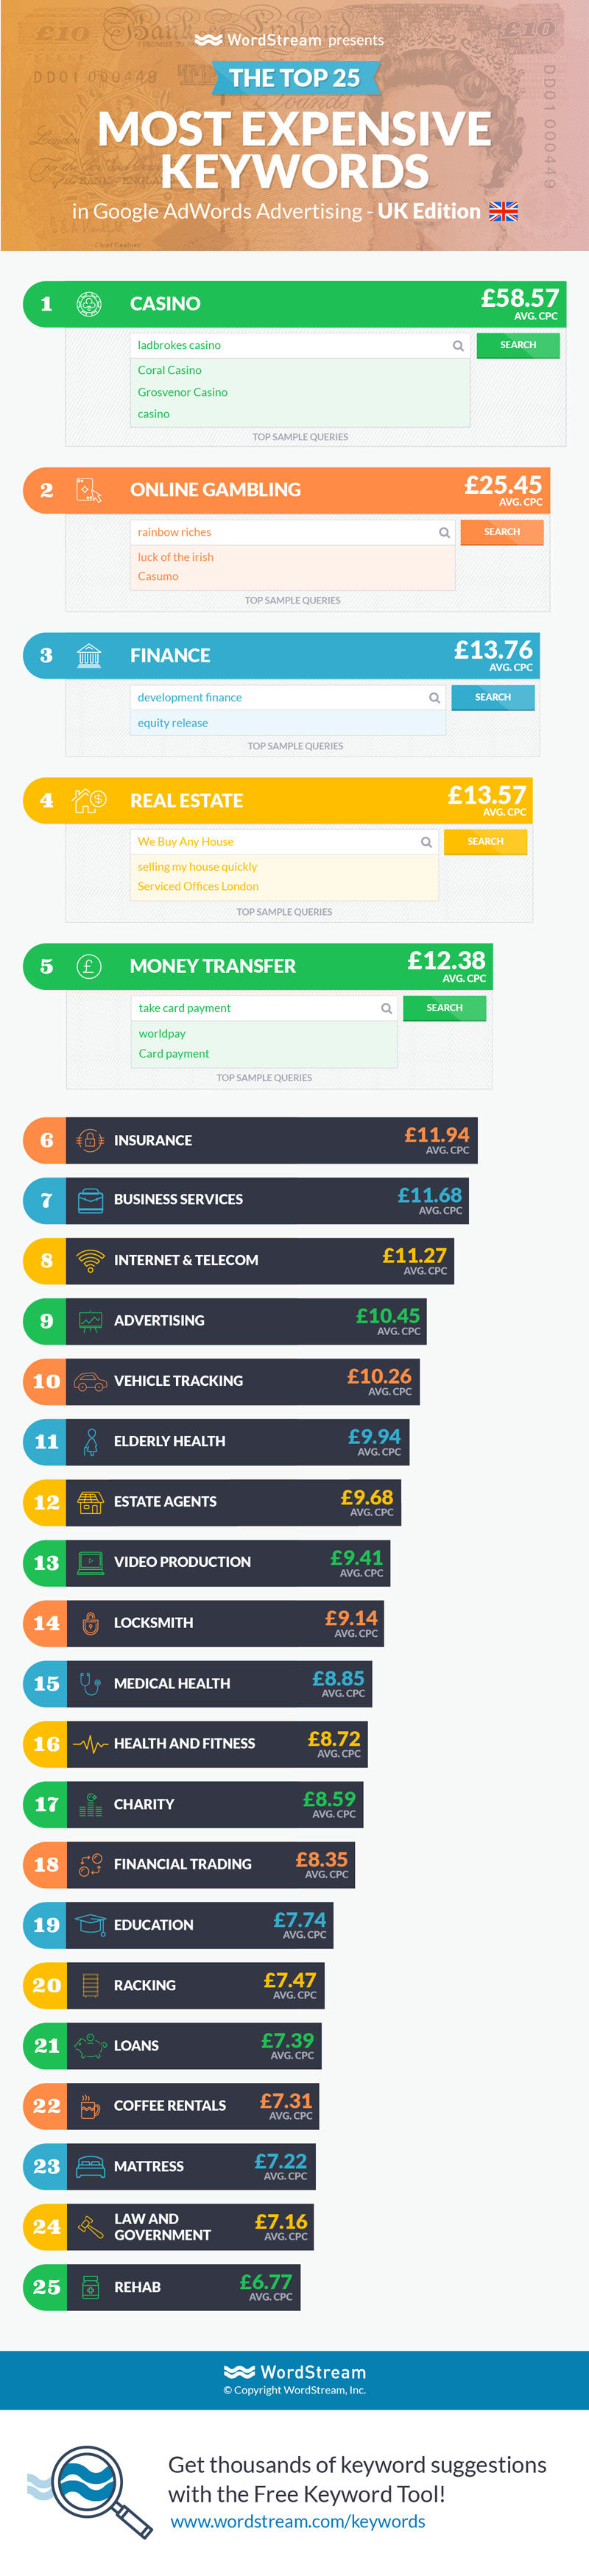 highest cost keywords in british pound